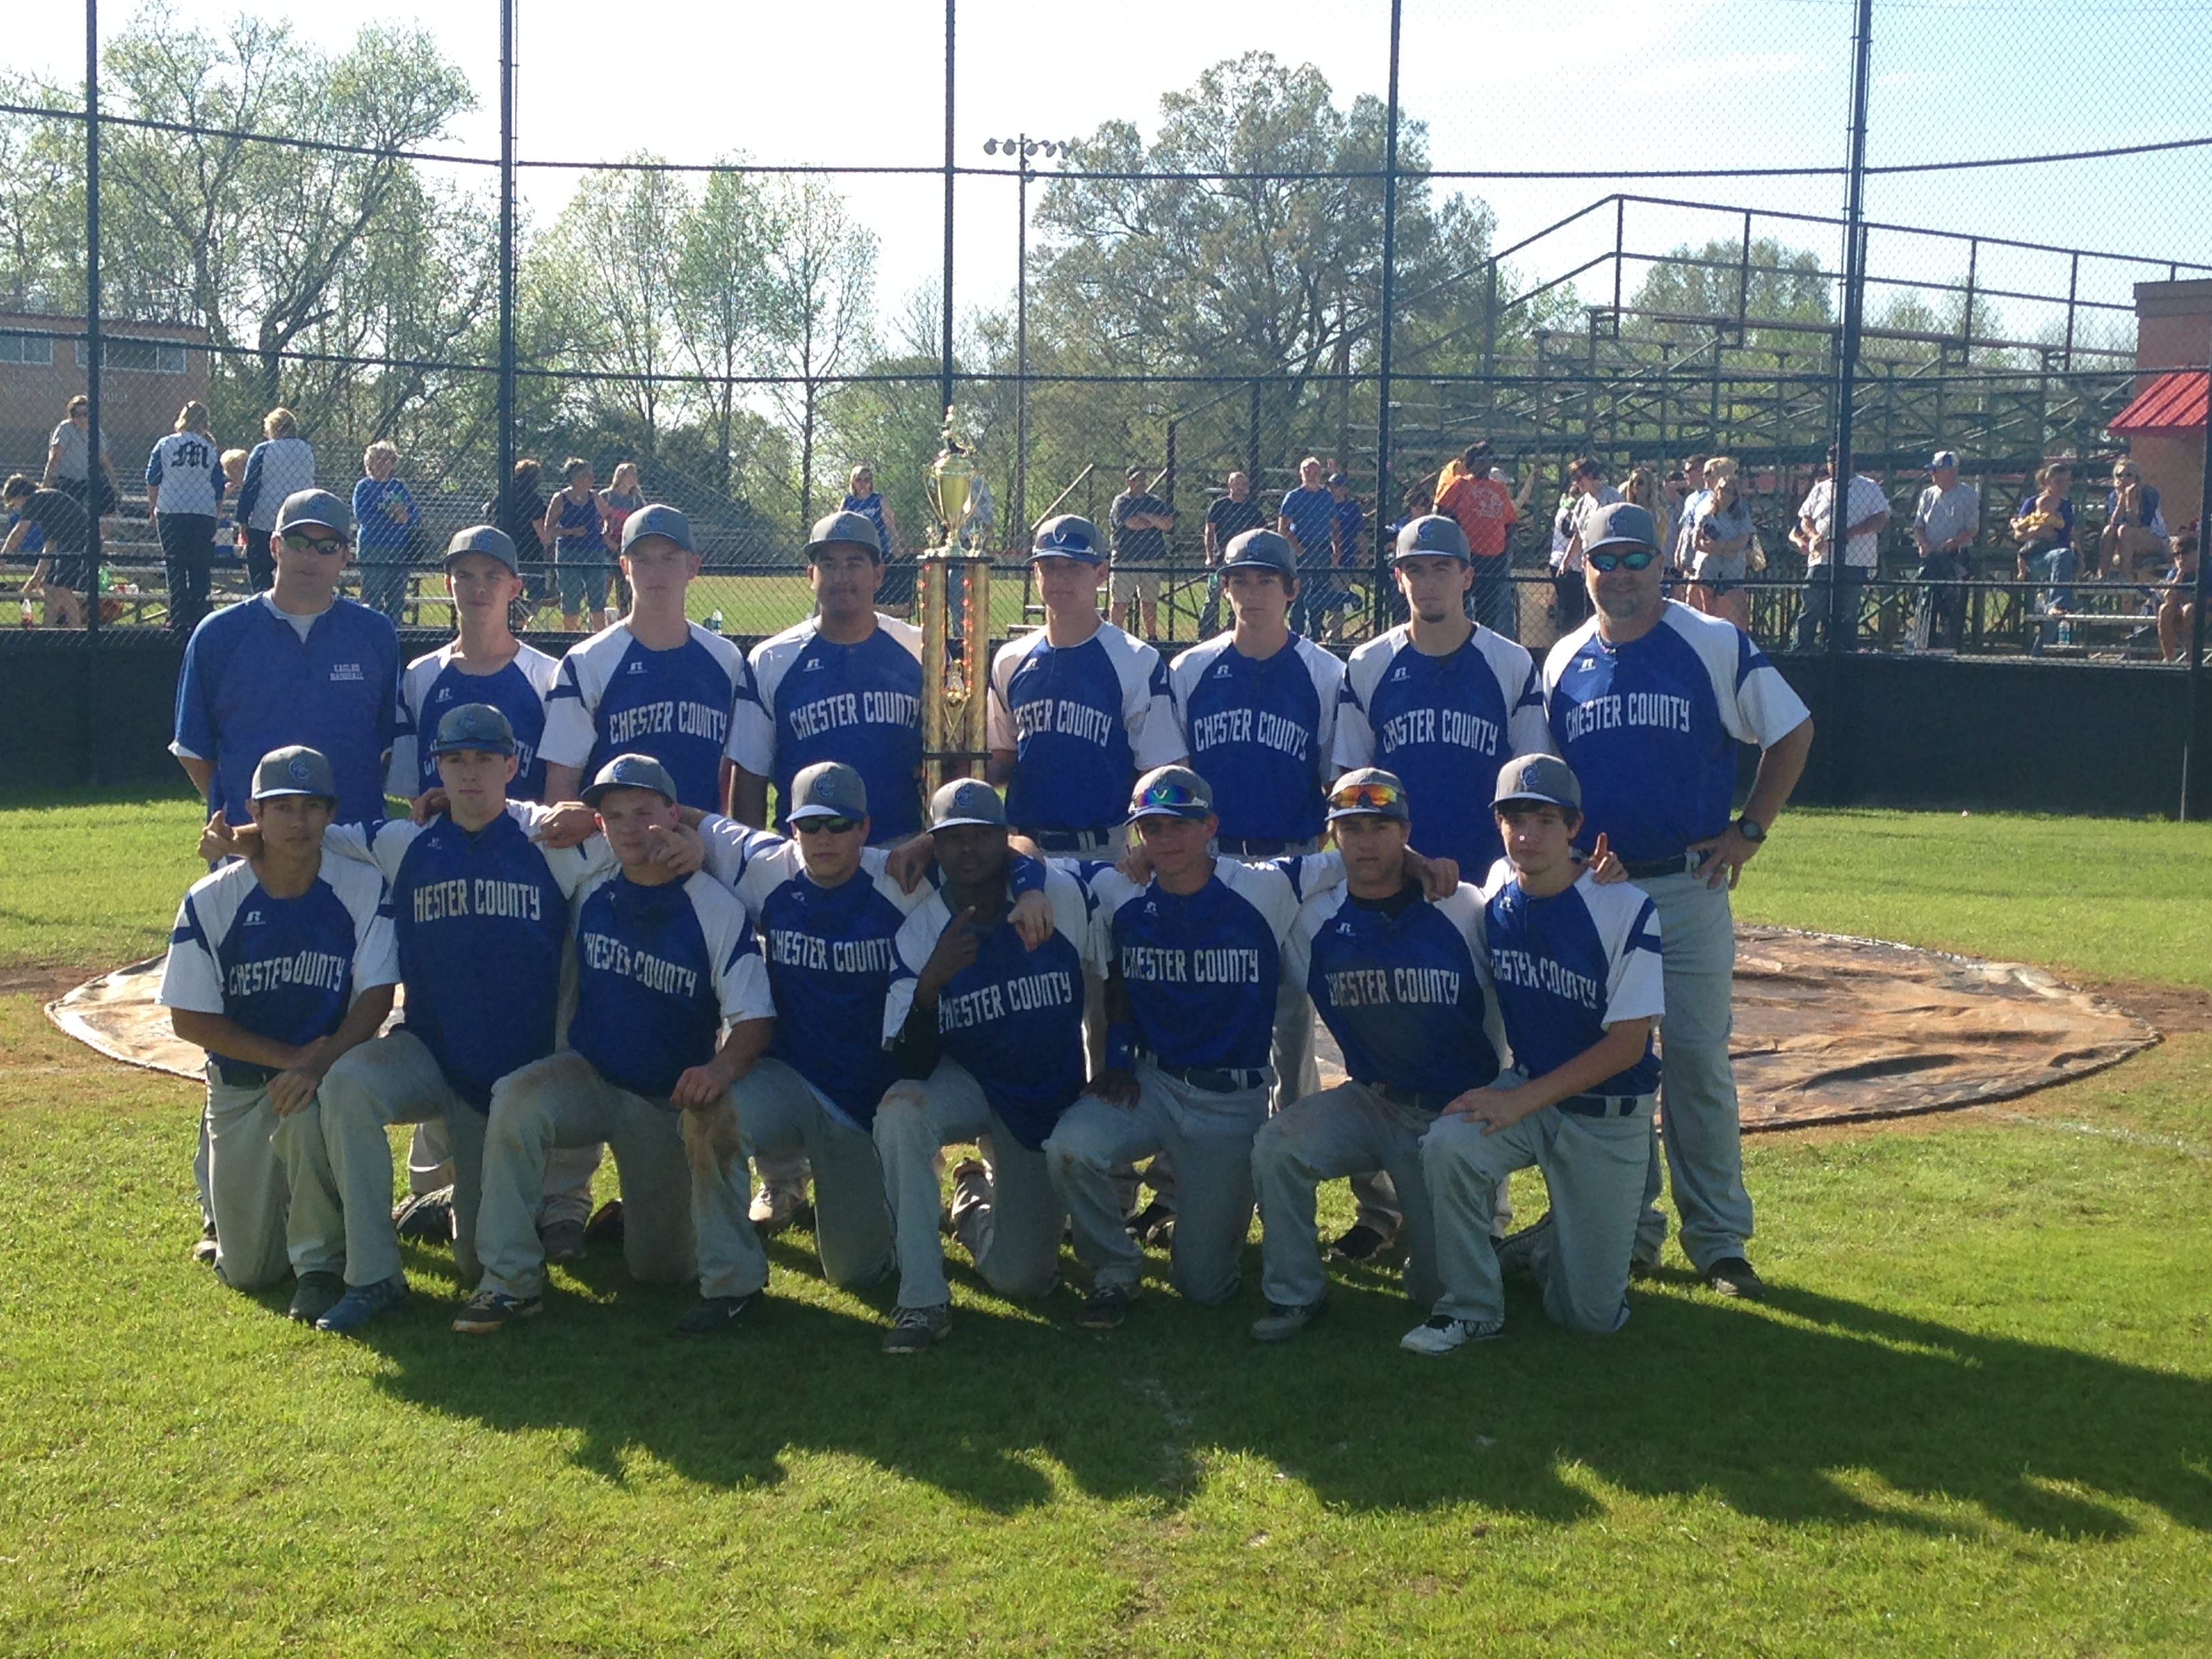 The Chester County baseball team won the Independent Appeal tournament at Adamsville.